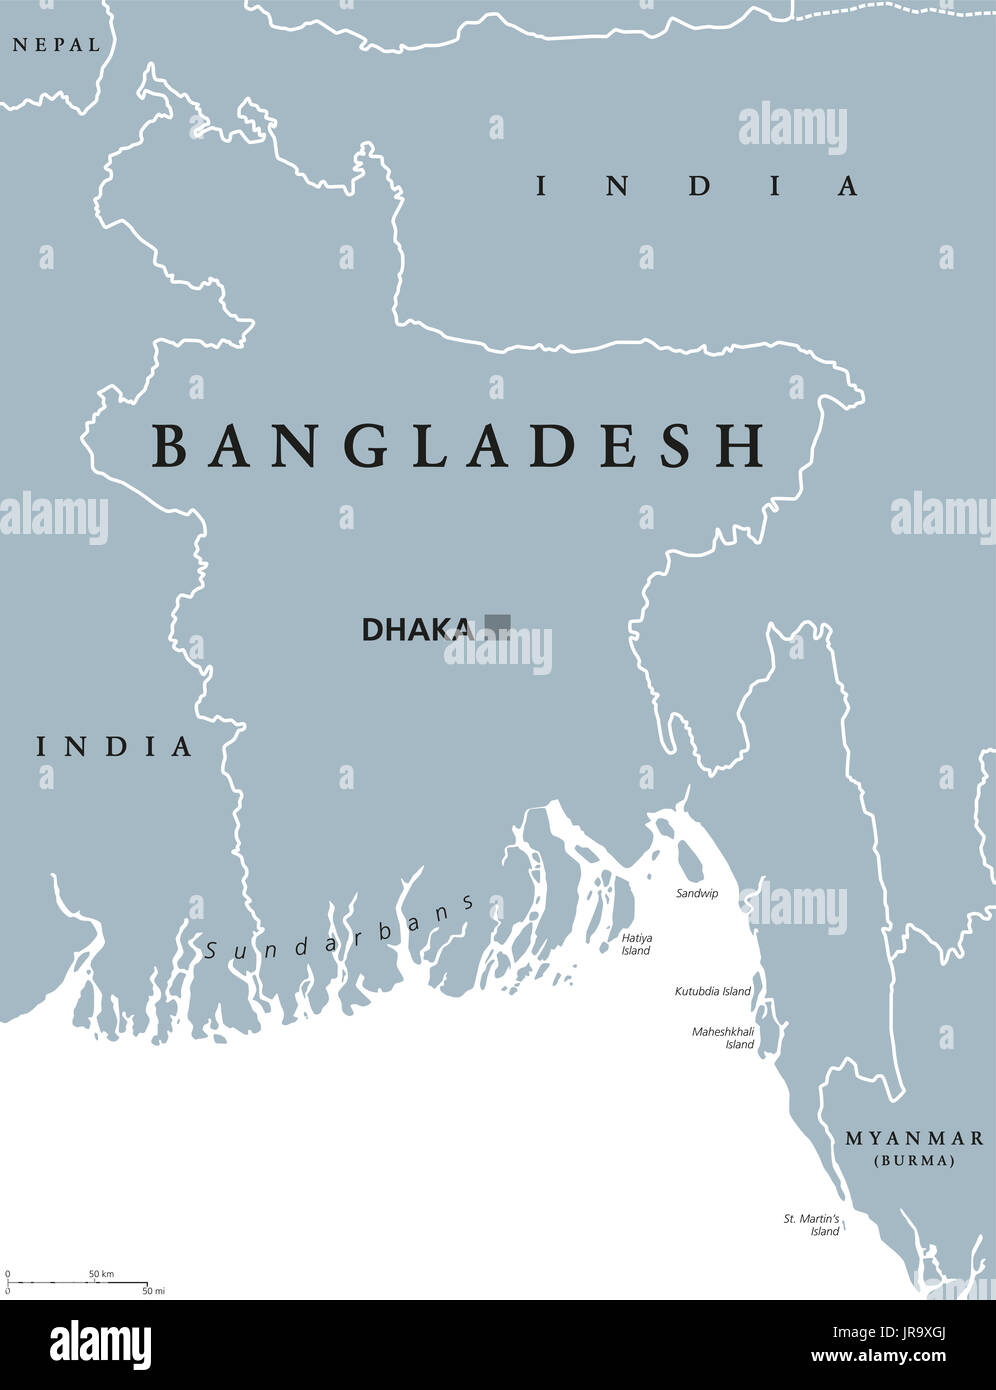 Bangladesh ... What country is this Where is it